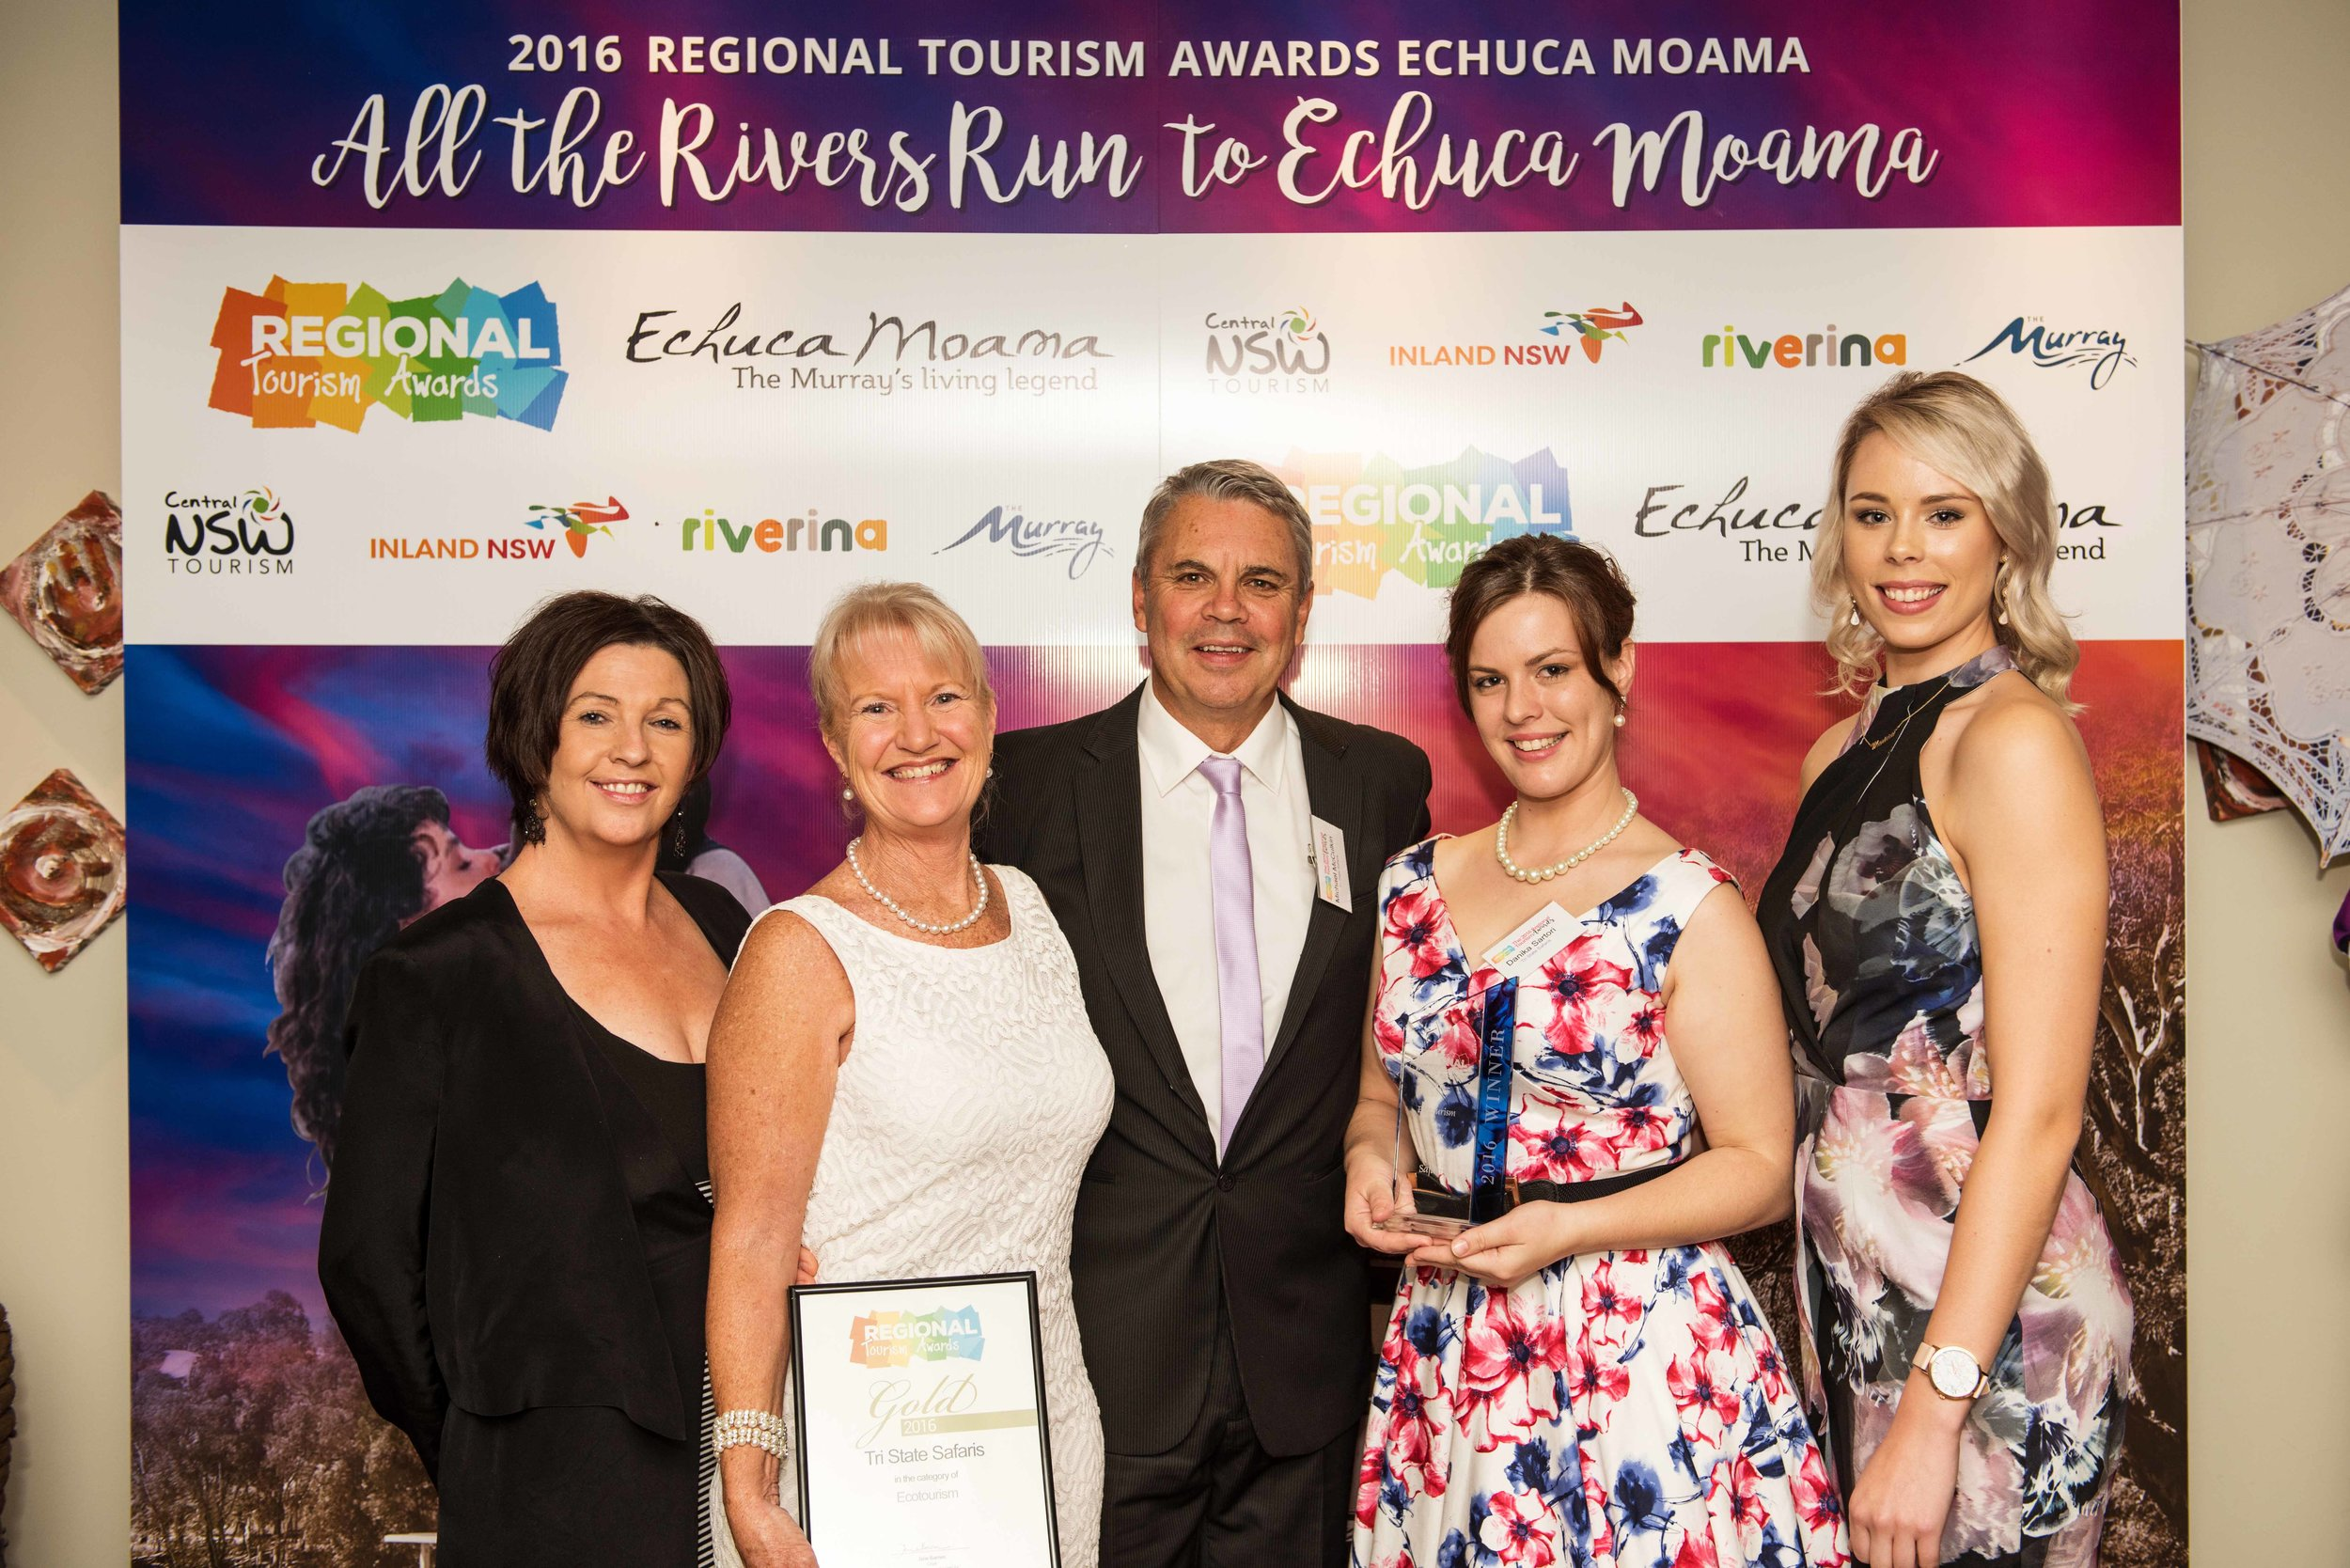 Winners at the 2016 Regional Tourism Awards in Echuca Moama